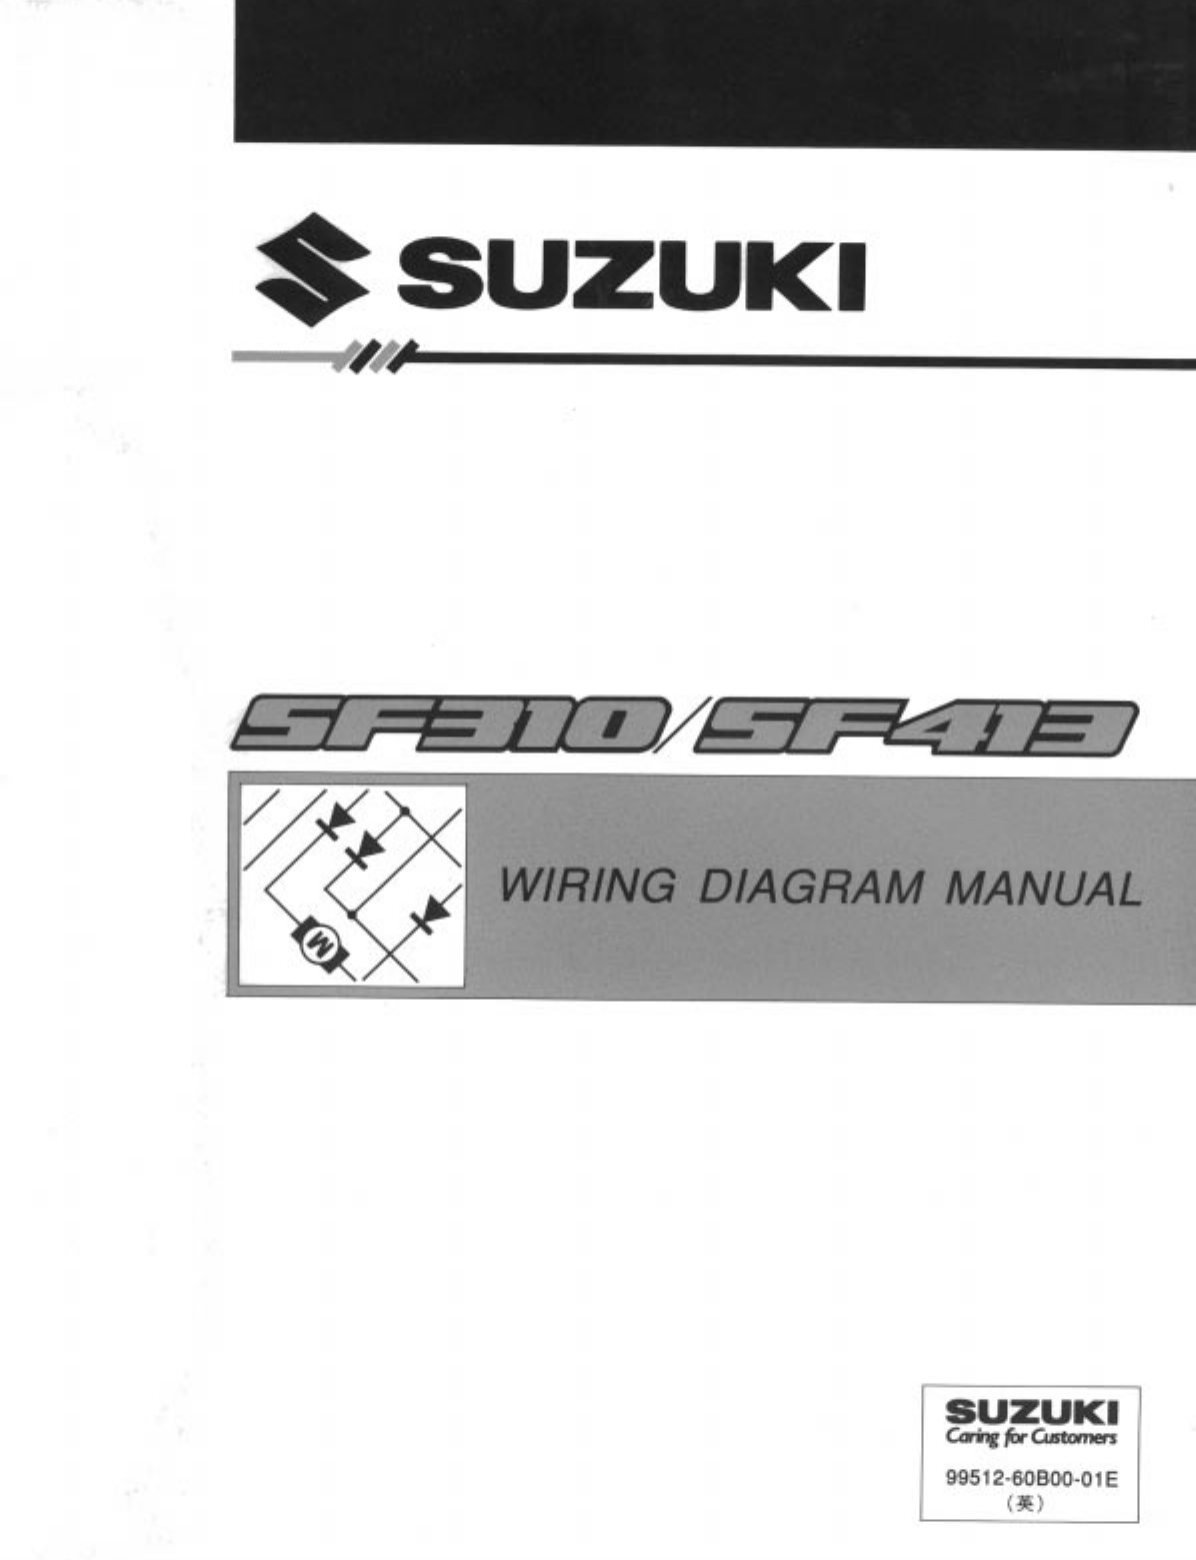 Suzuki Swift 1989 1999 Misc Documents Wiring Diagrams Pdf